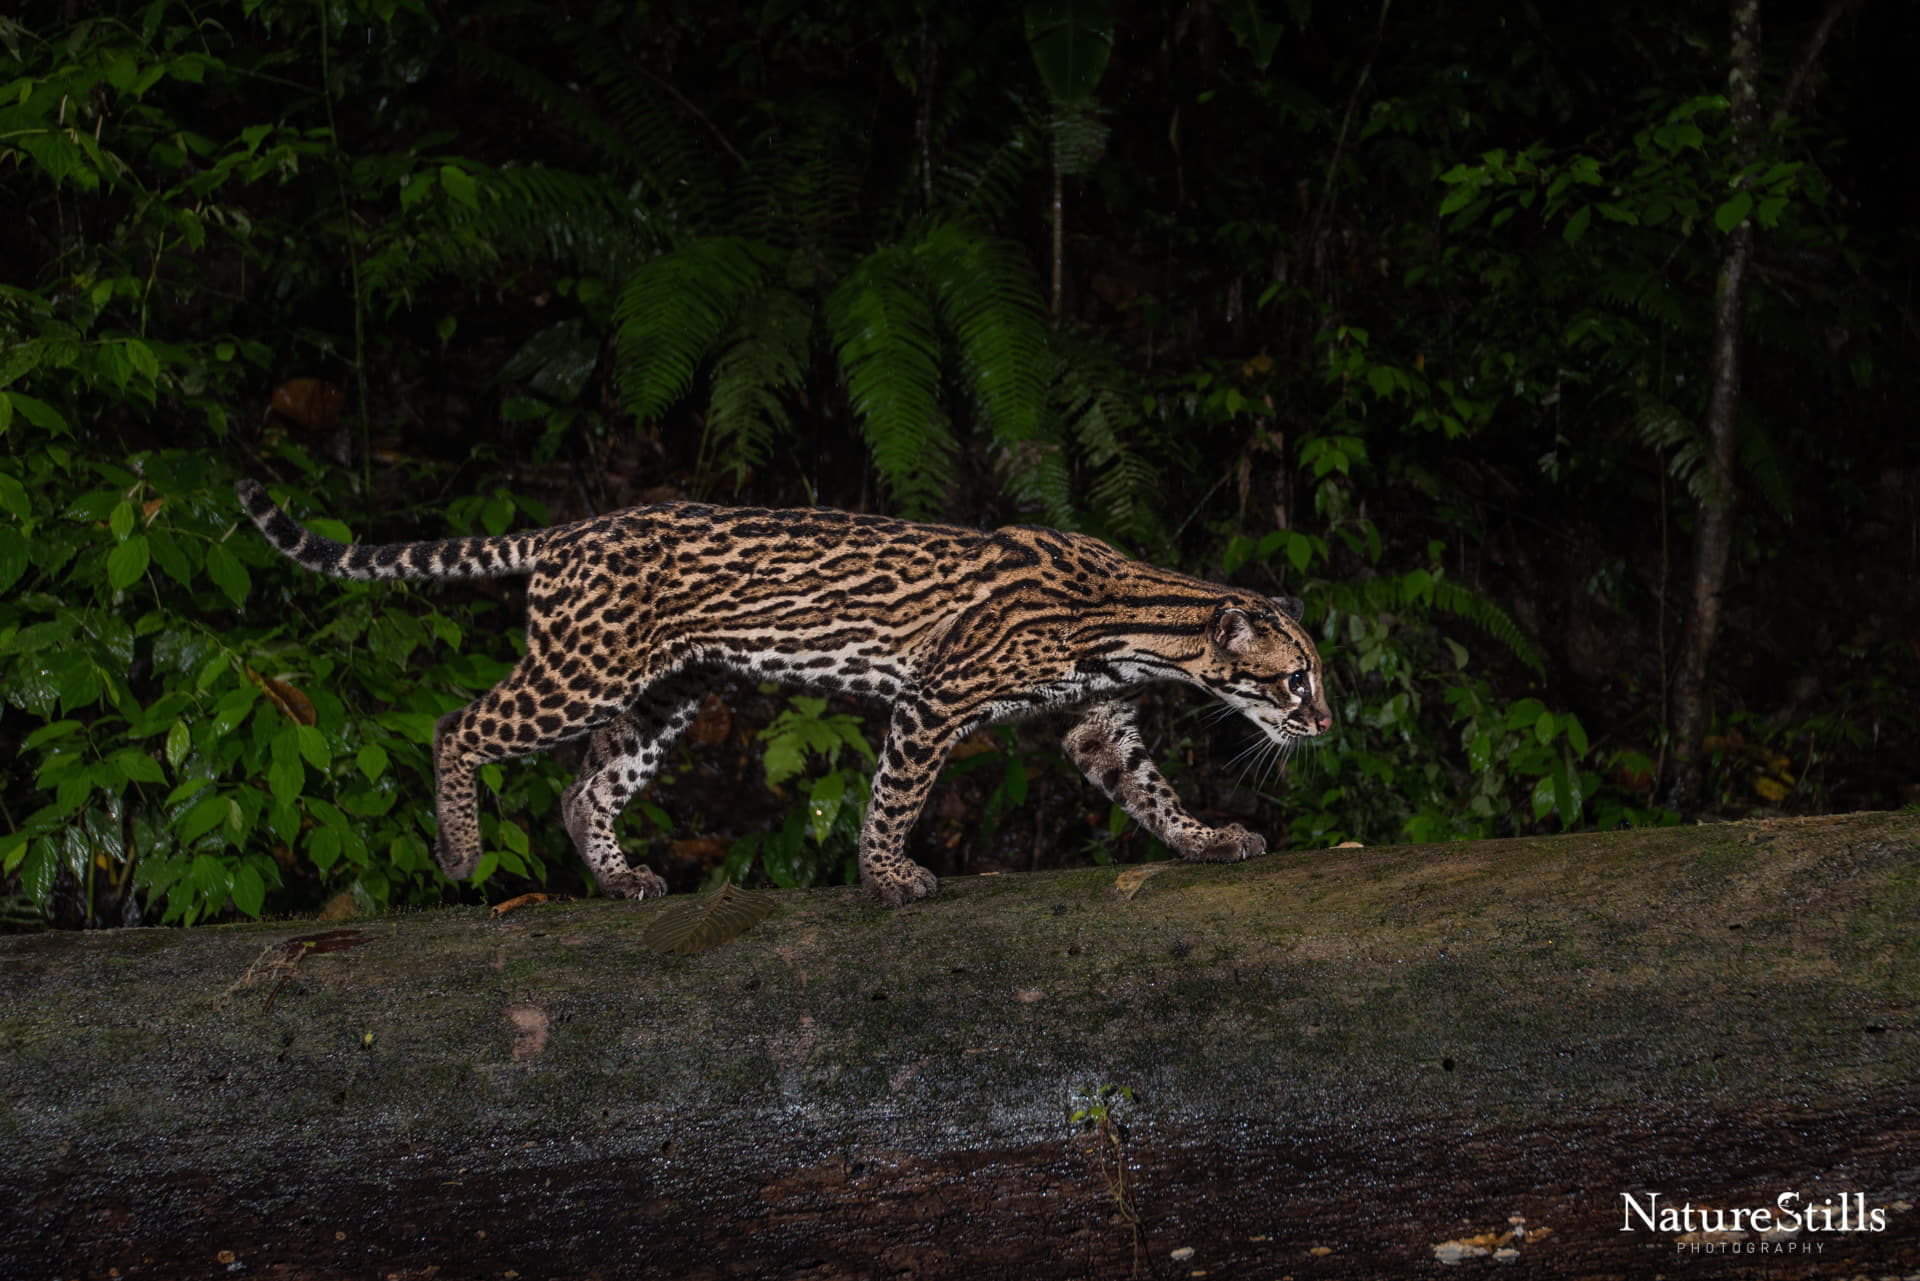 Ocelot in JCR - photograph by Ryan's friend at NatureStills.jpg